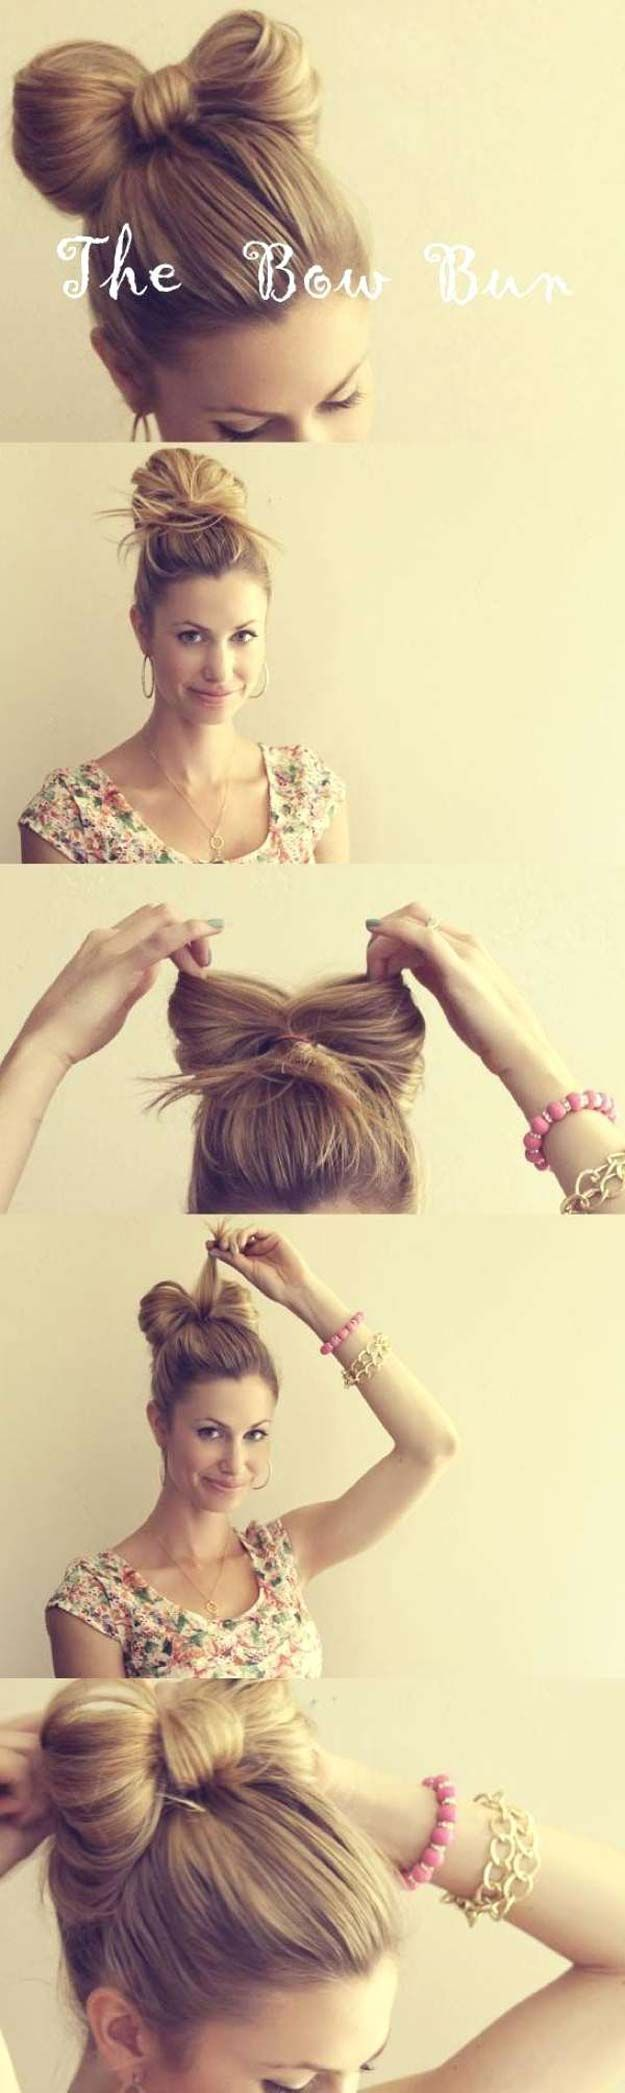 Cool and Easy DIY Hairstyles - The Hair Bow - Quick and Easy Ideas for Back to S...